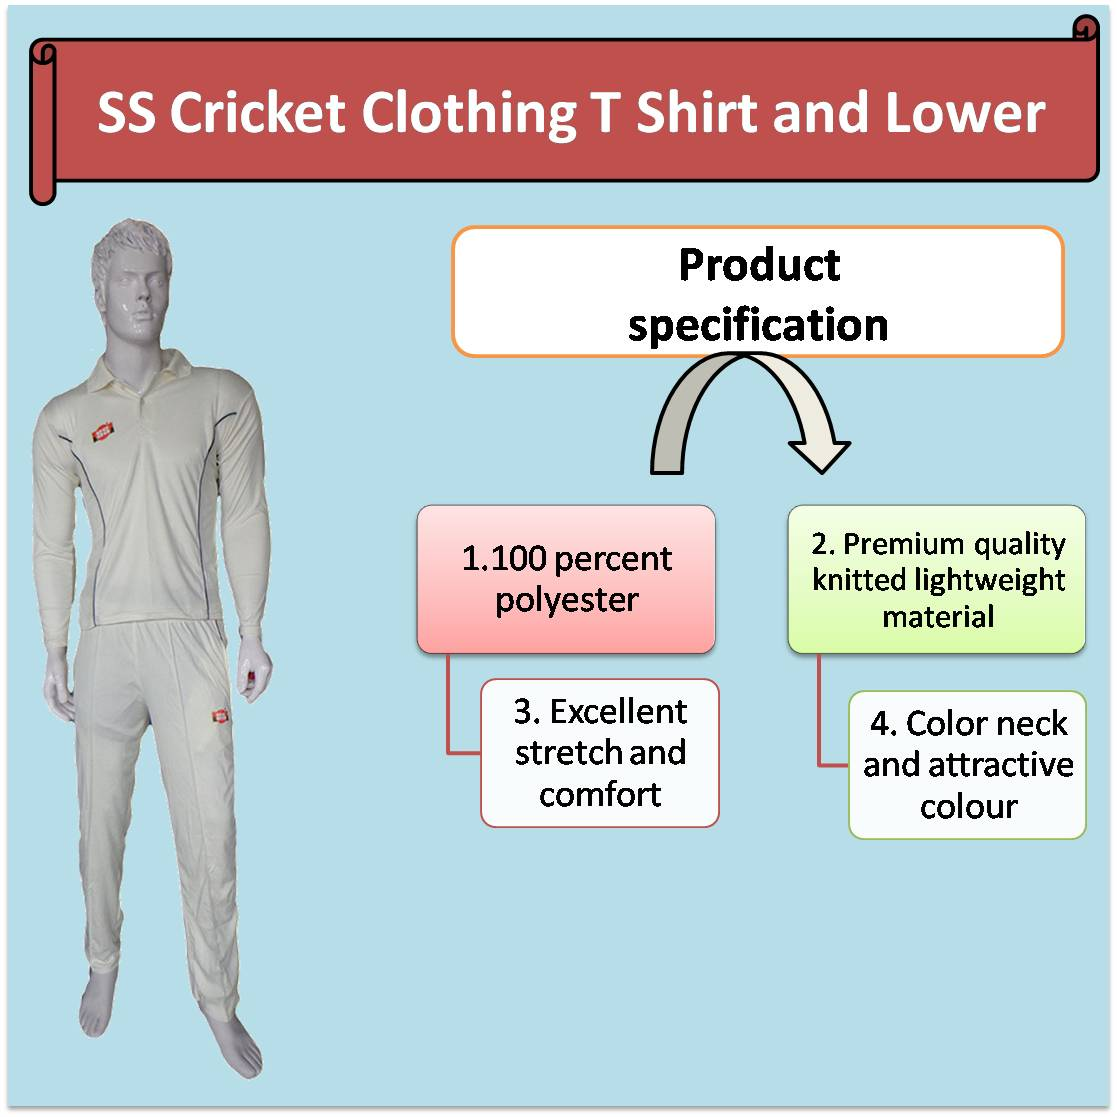 SS Cricket Clothing T Shirt and Lower